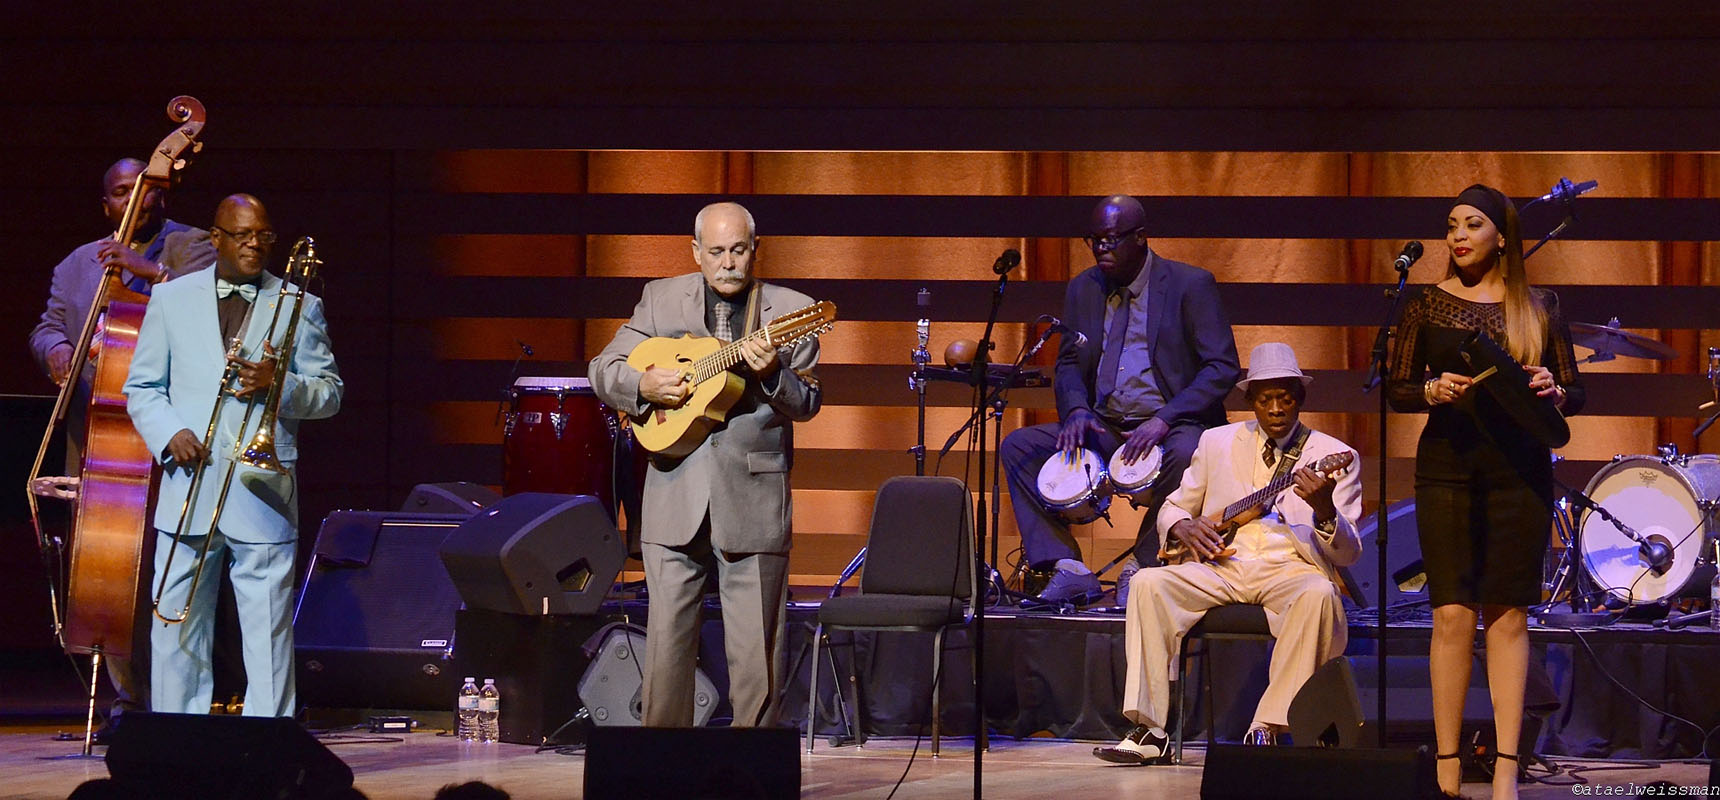 Buena Vista Social Club in Toronto 12